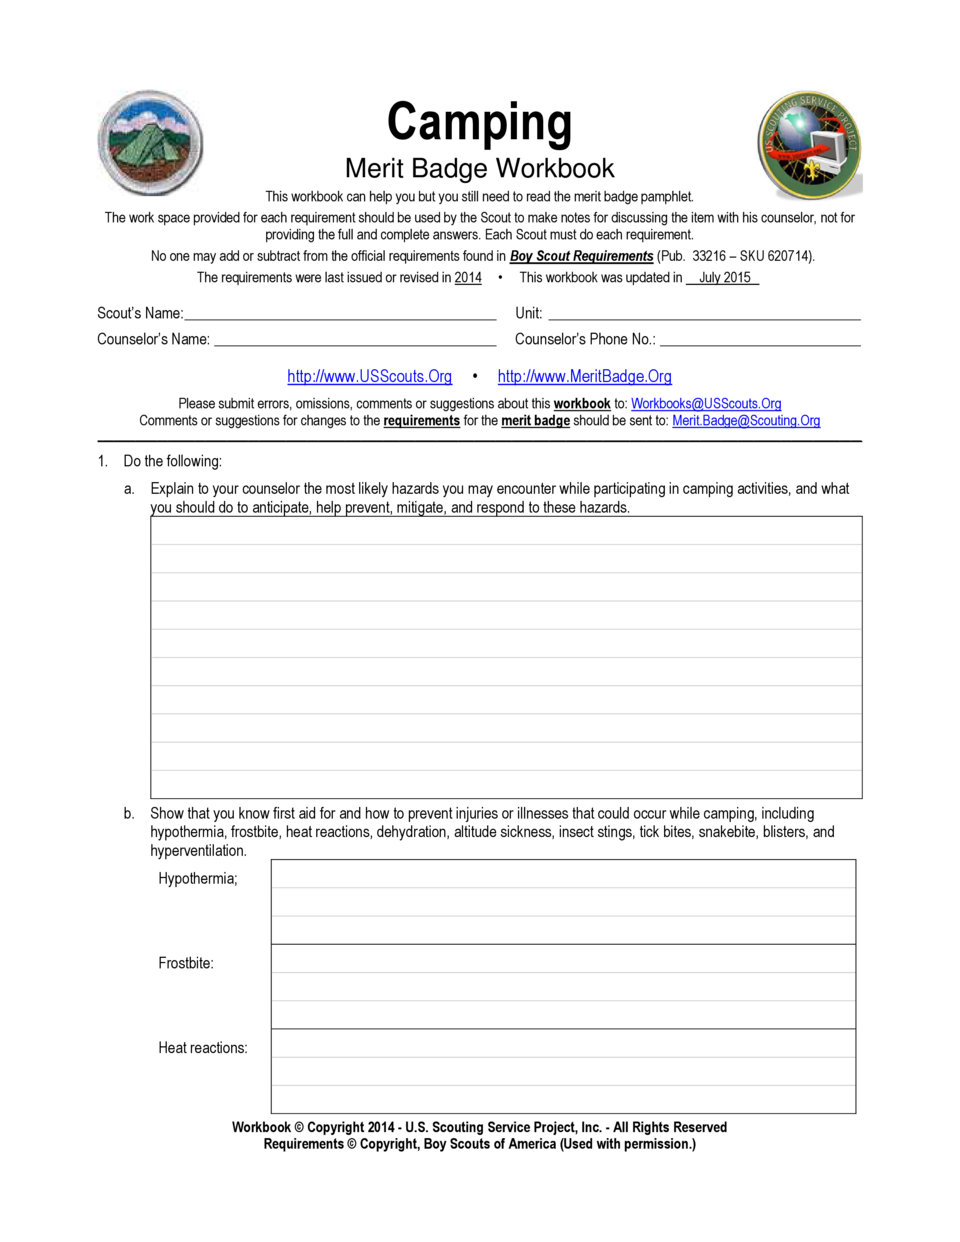 Worksheets Boy Scout Merit Badge Worksheets camping merit badge simplebooklet com workbook this can help you but still need to read the